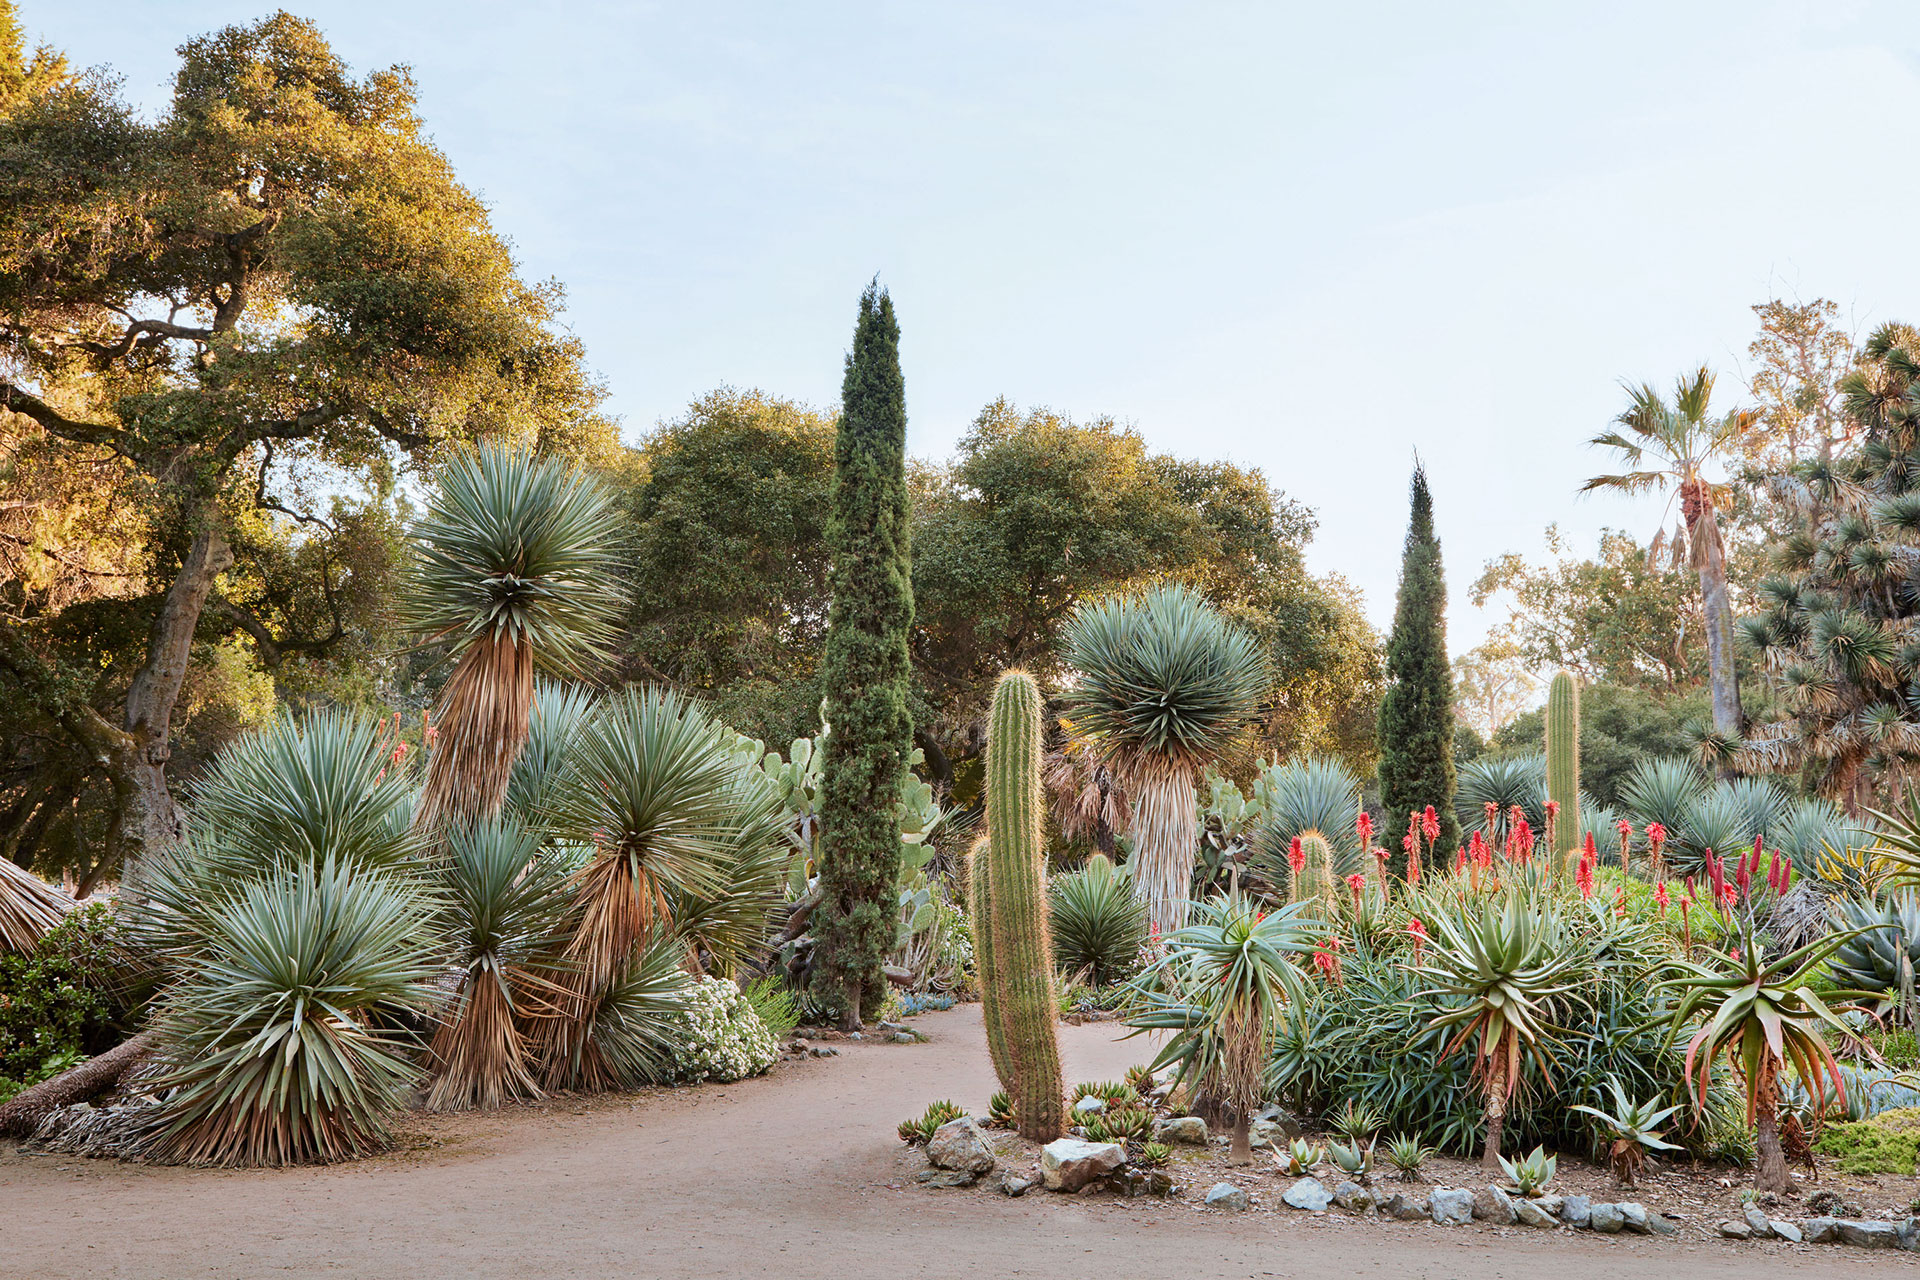 arboretum agaves and yuccas plants